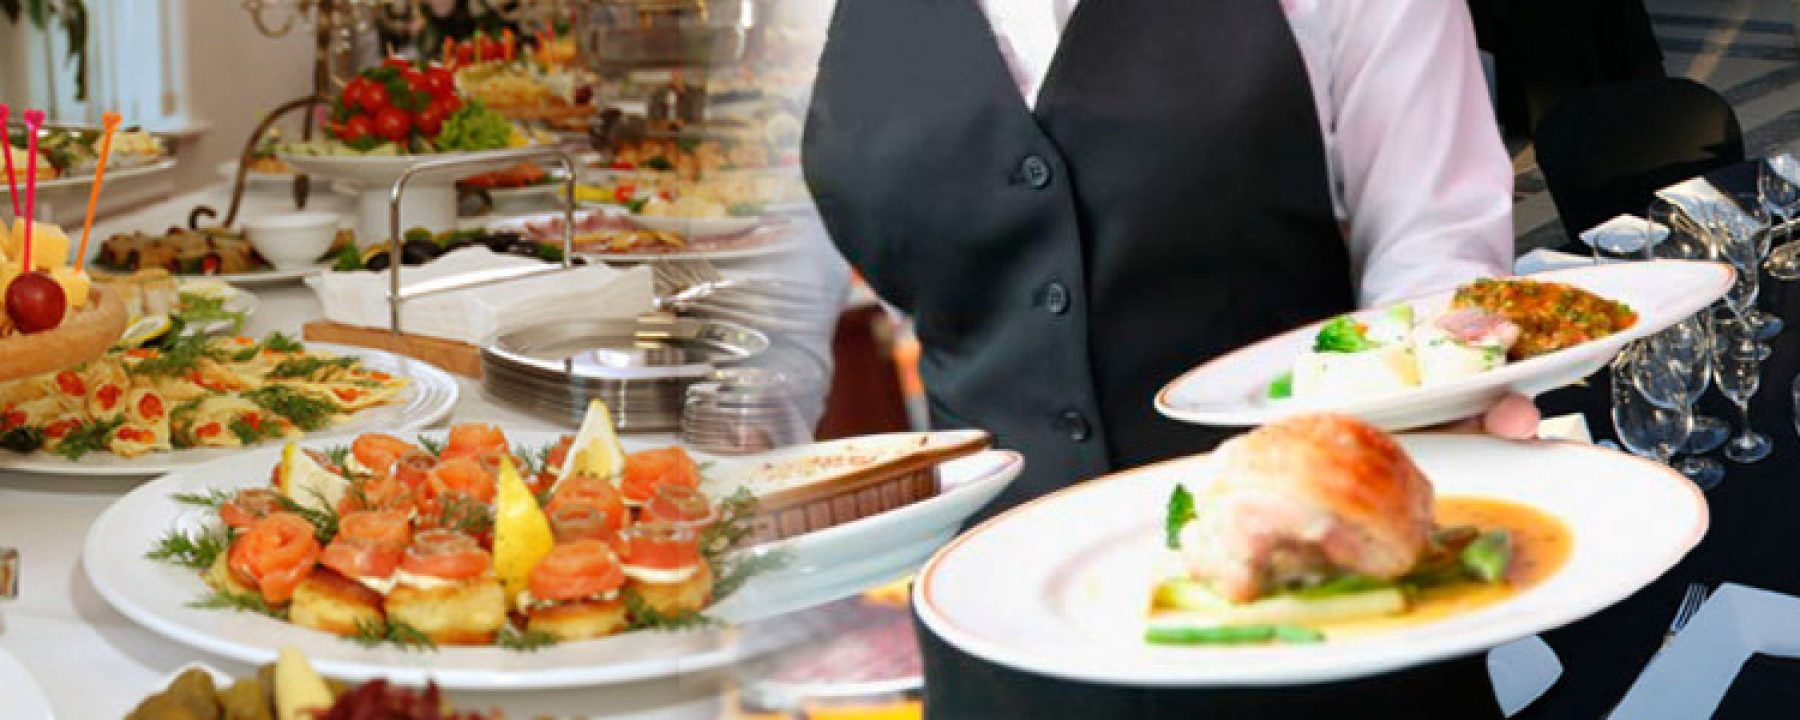 cropped-banner-catering.jpg